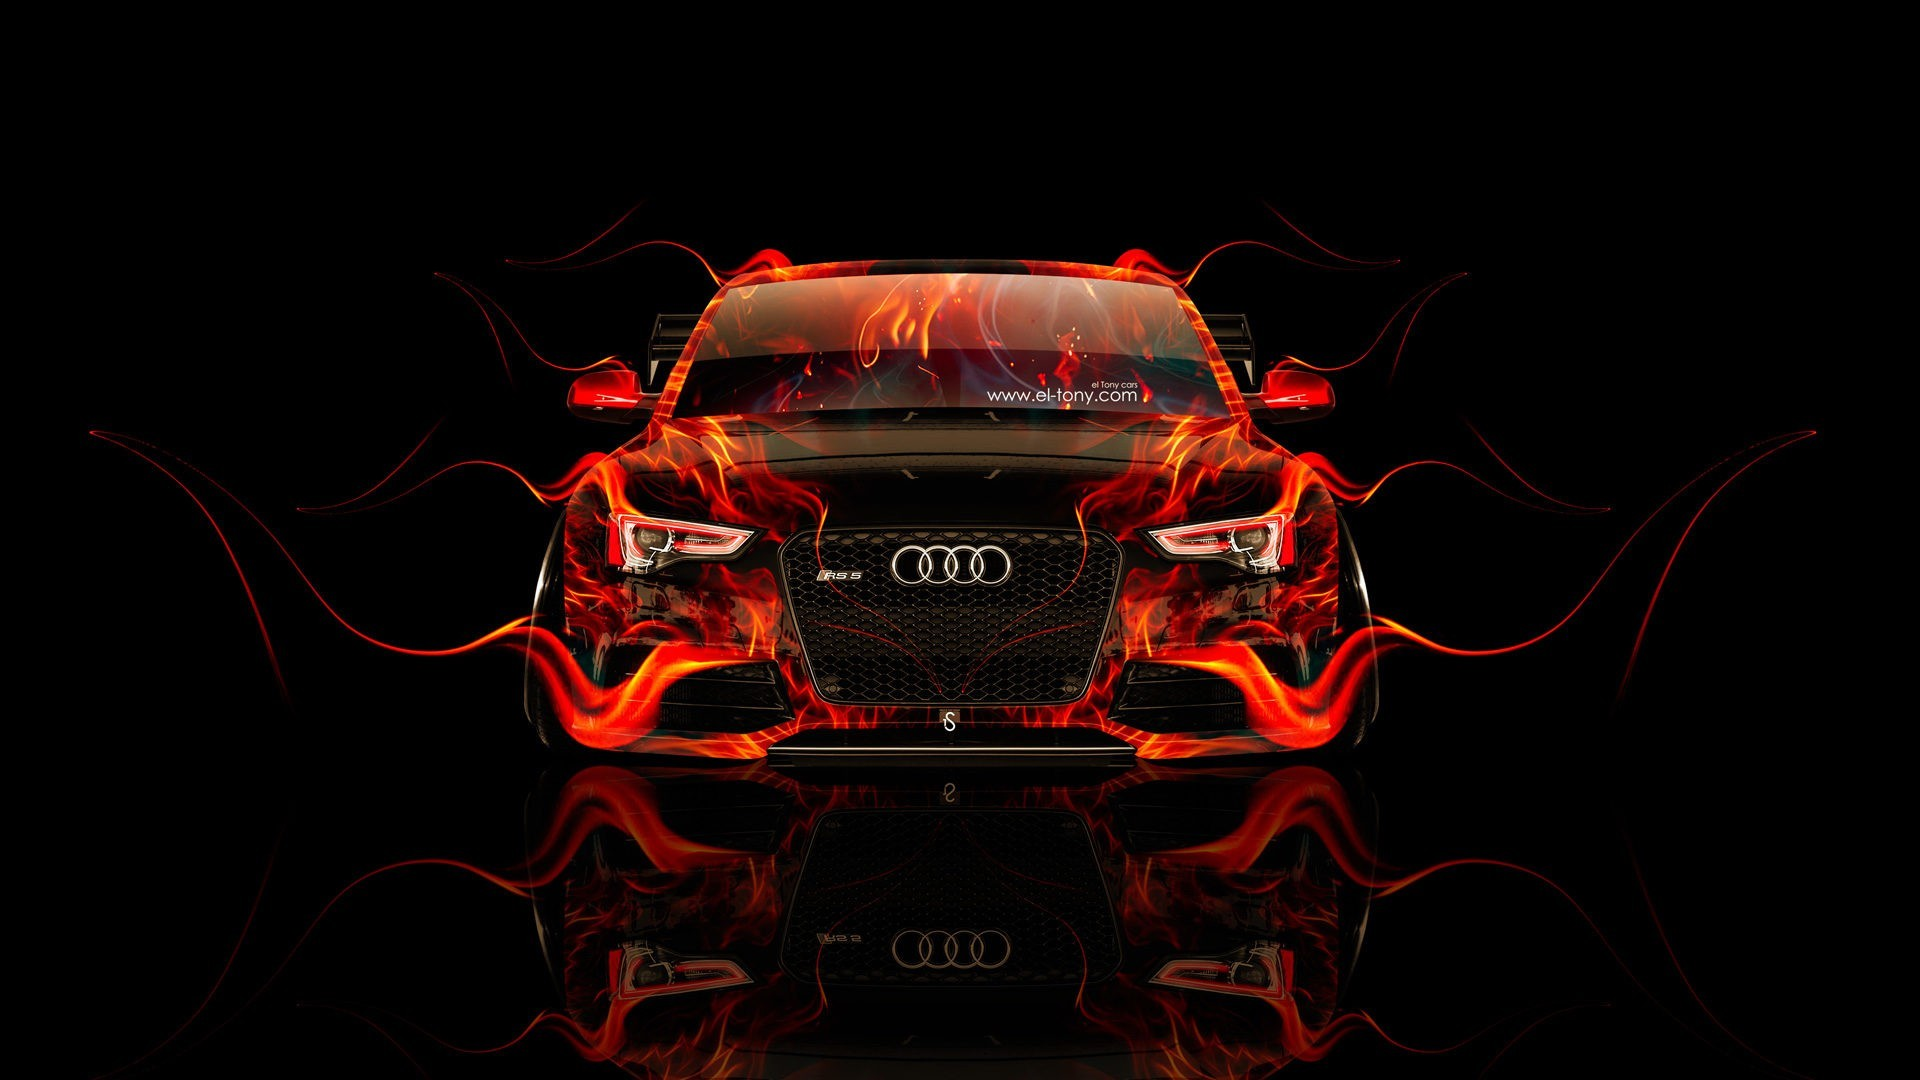 Audi Flame Wallpaper